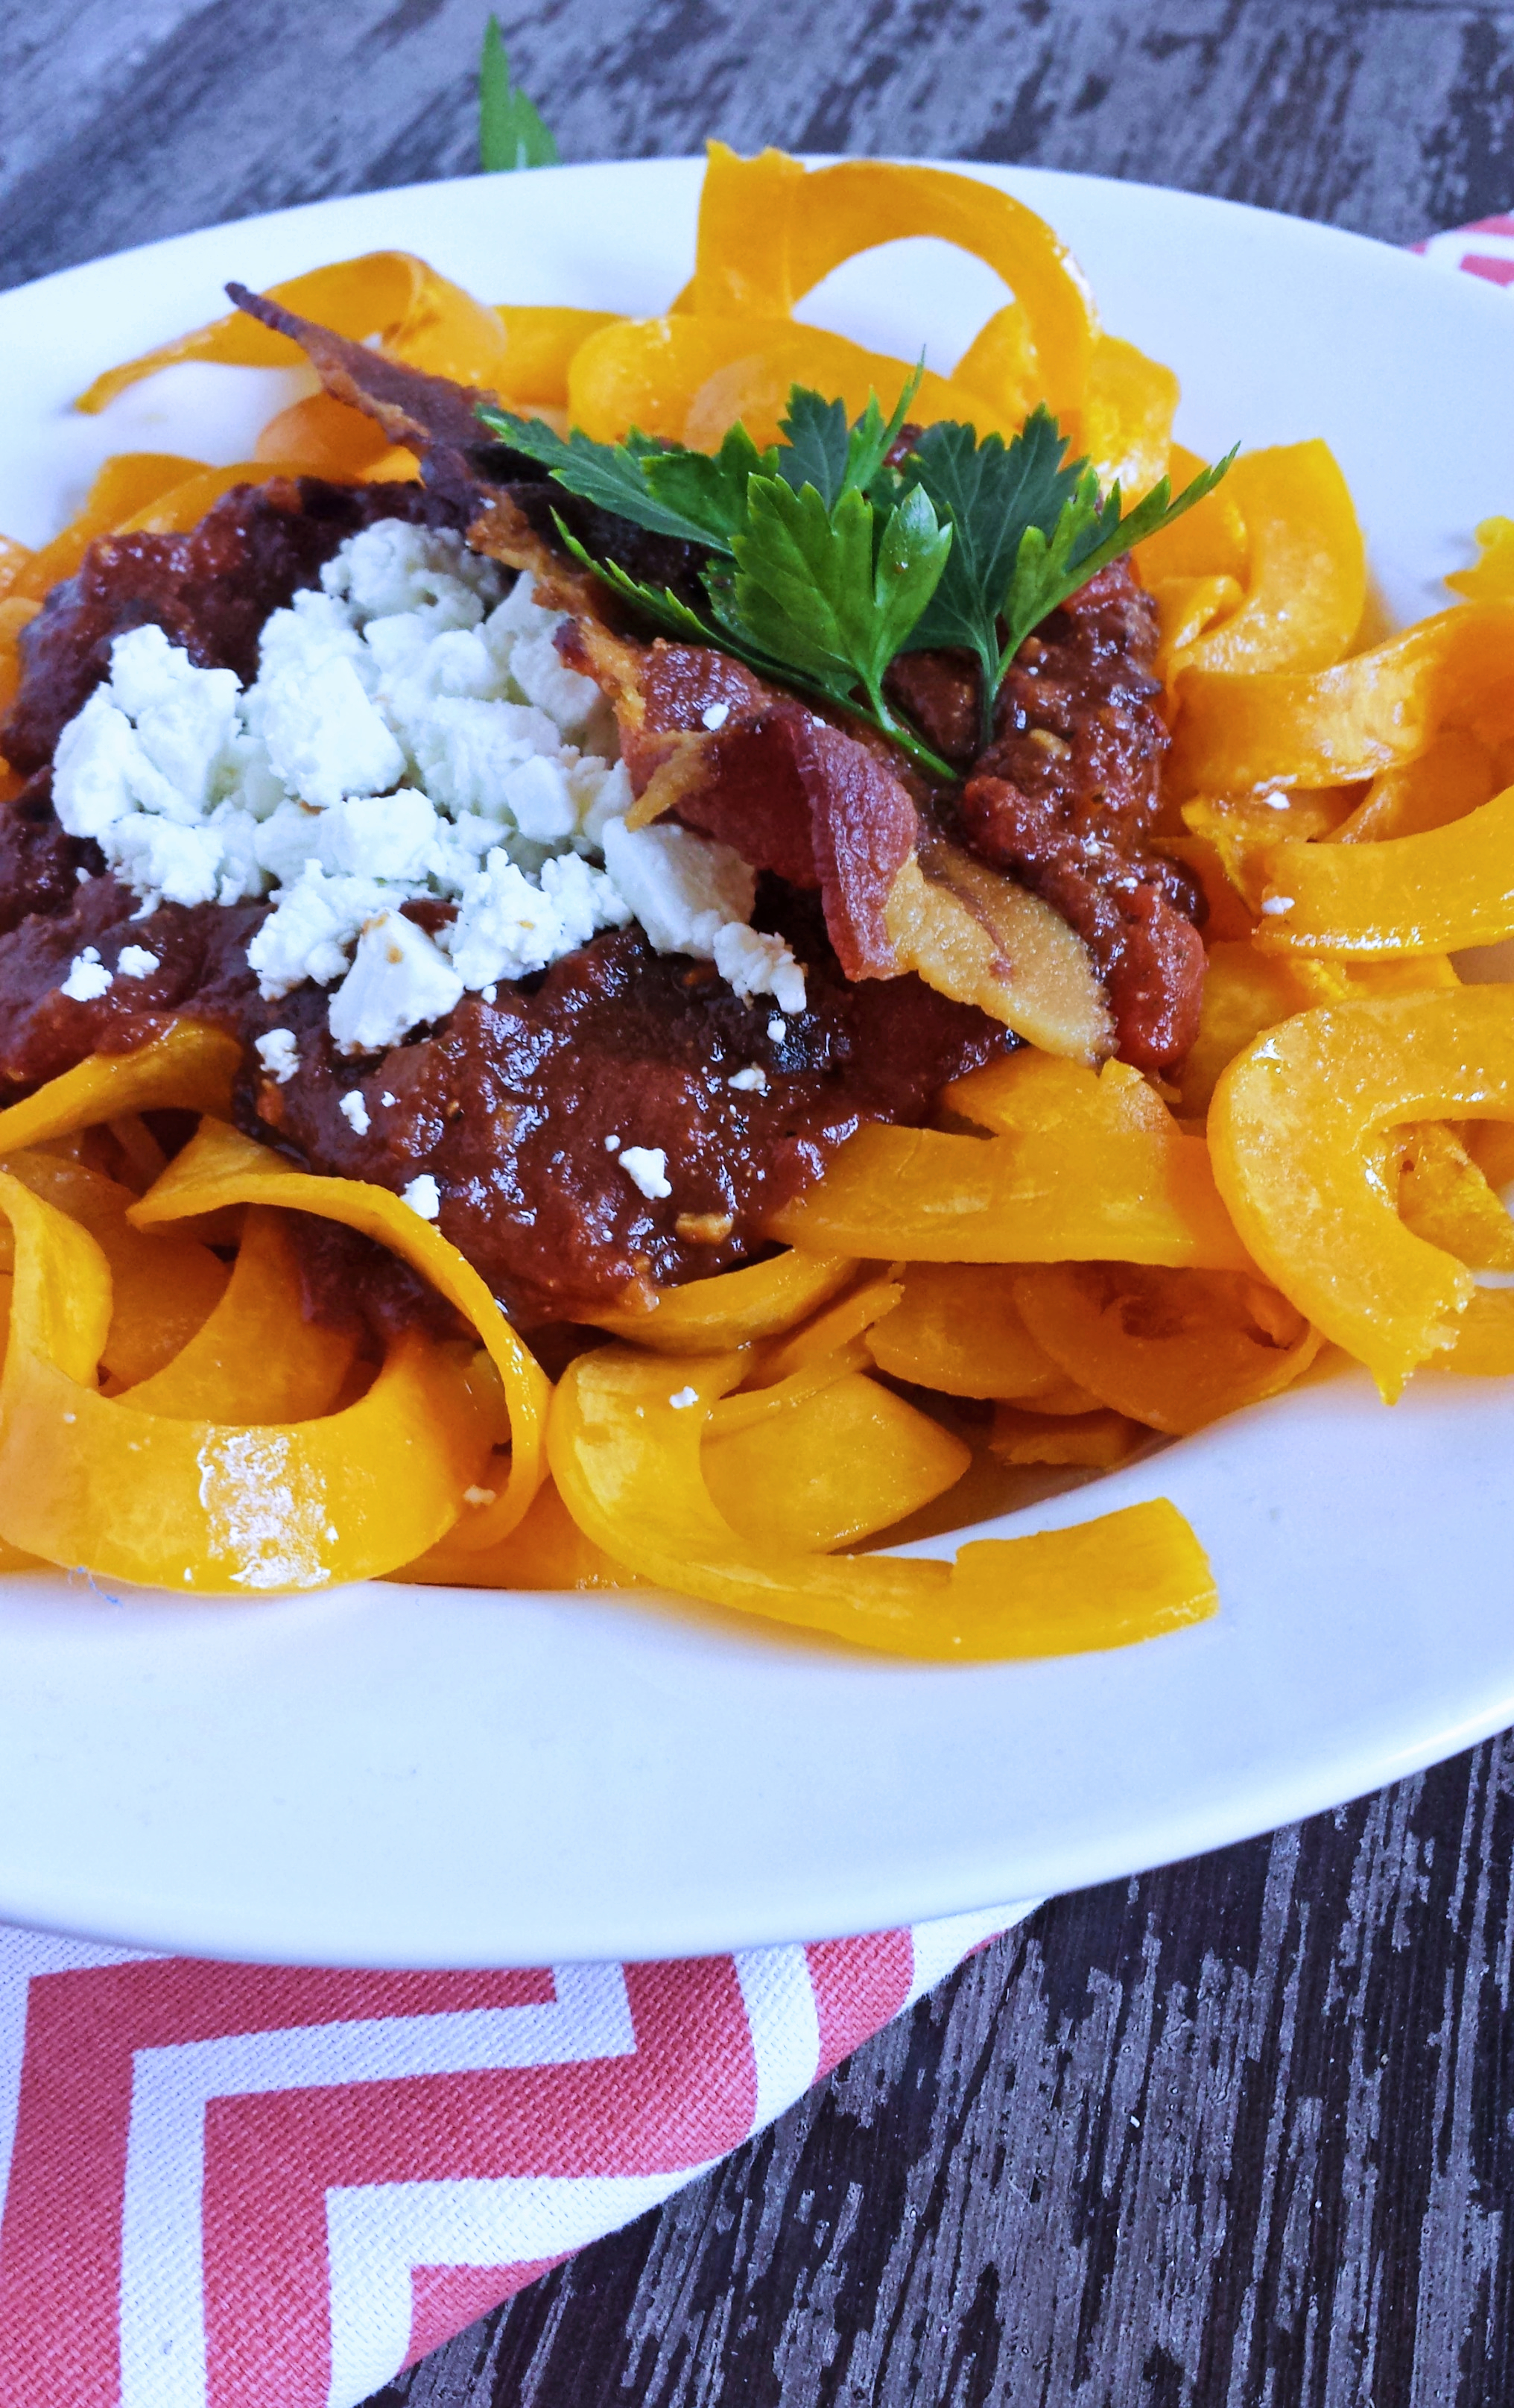 Spicy Plum Marinara with Roasted Butternut Squash, Goat Cheese & Bacon 7p